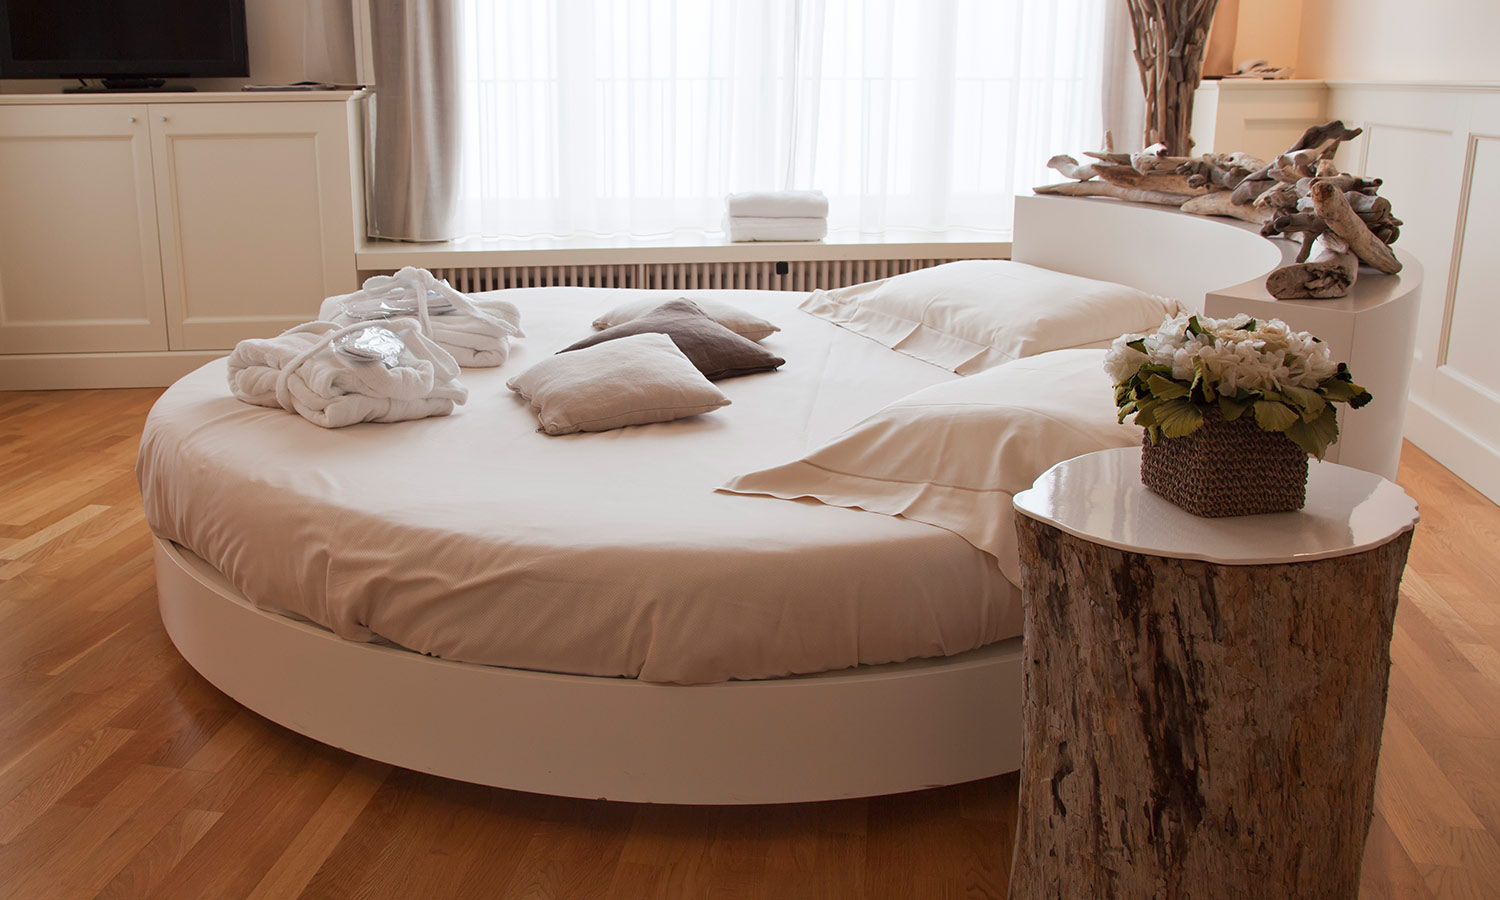 A round bed with pillows on top in a bright and sunny room.